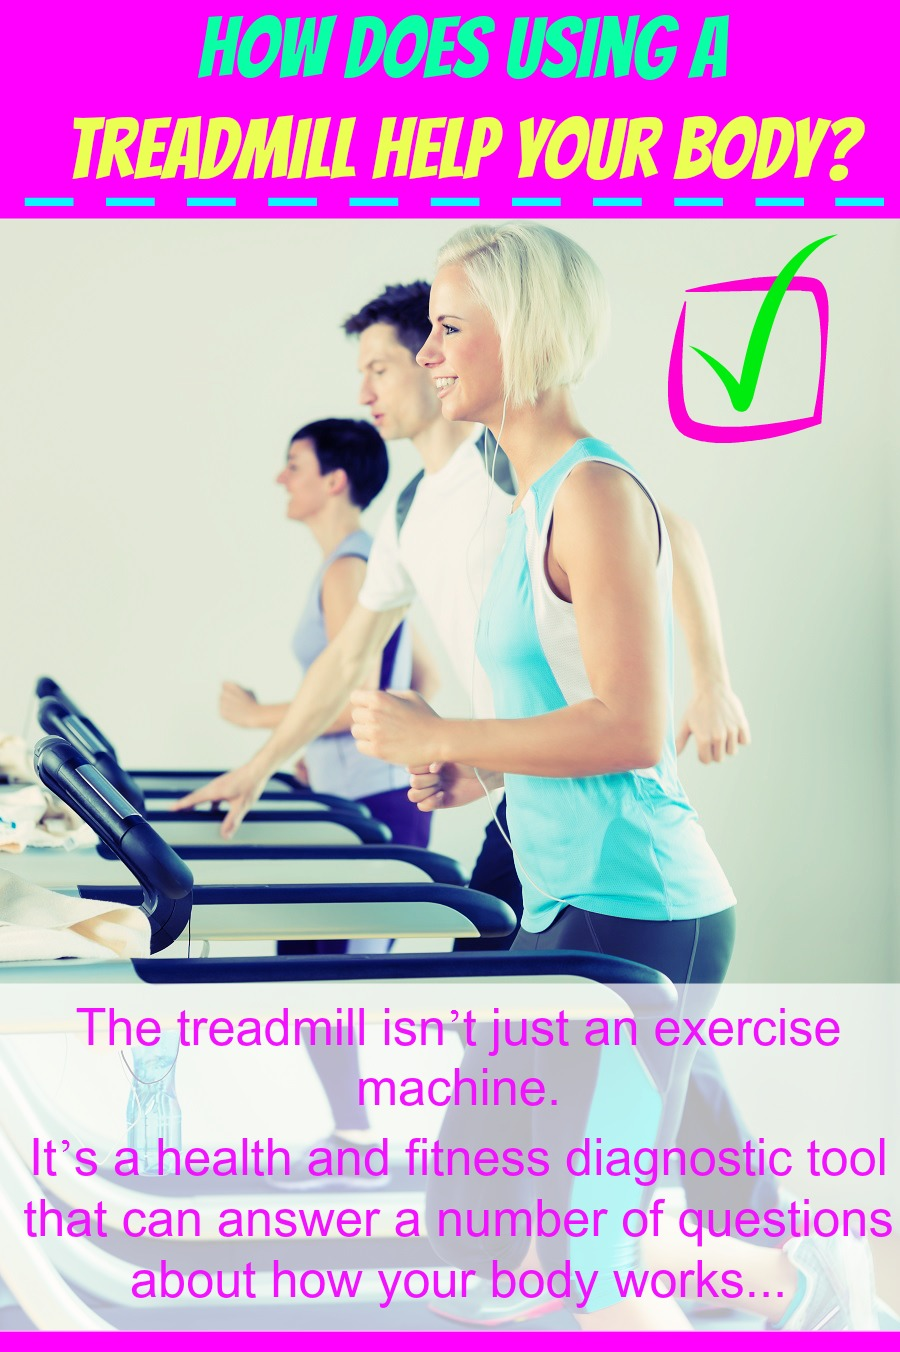 How Does Using a Treadmill Help Your Body